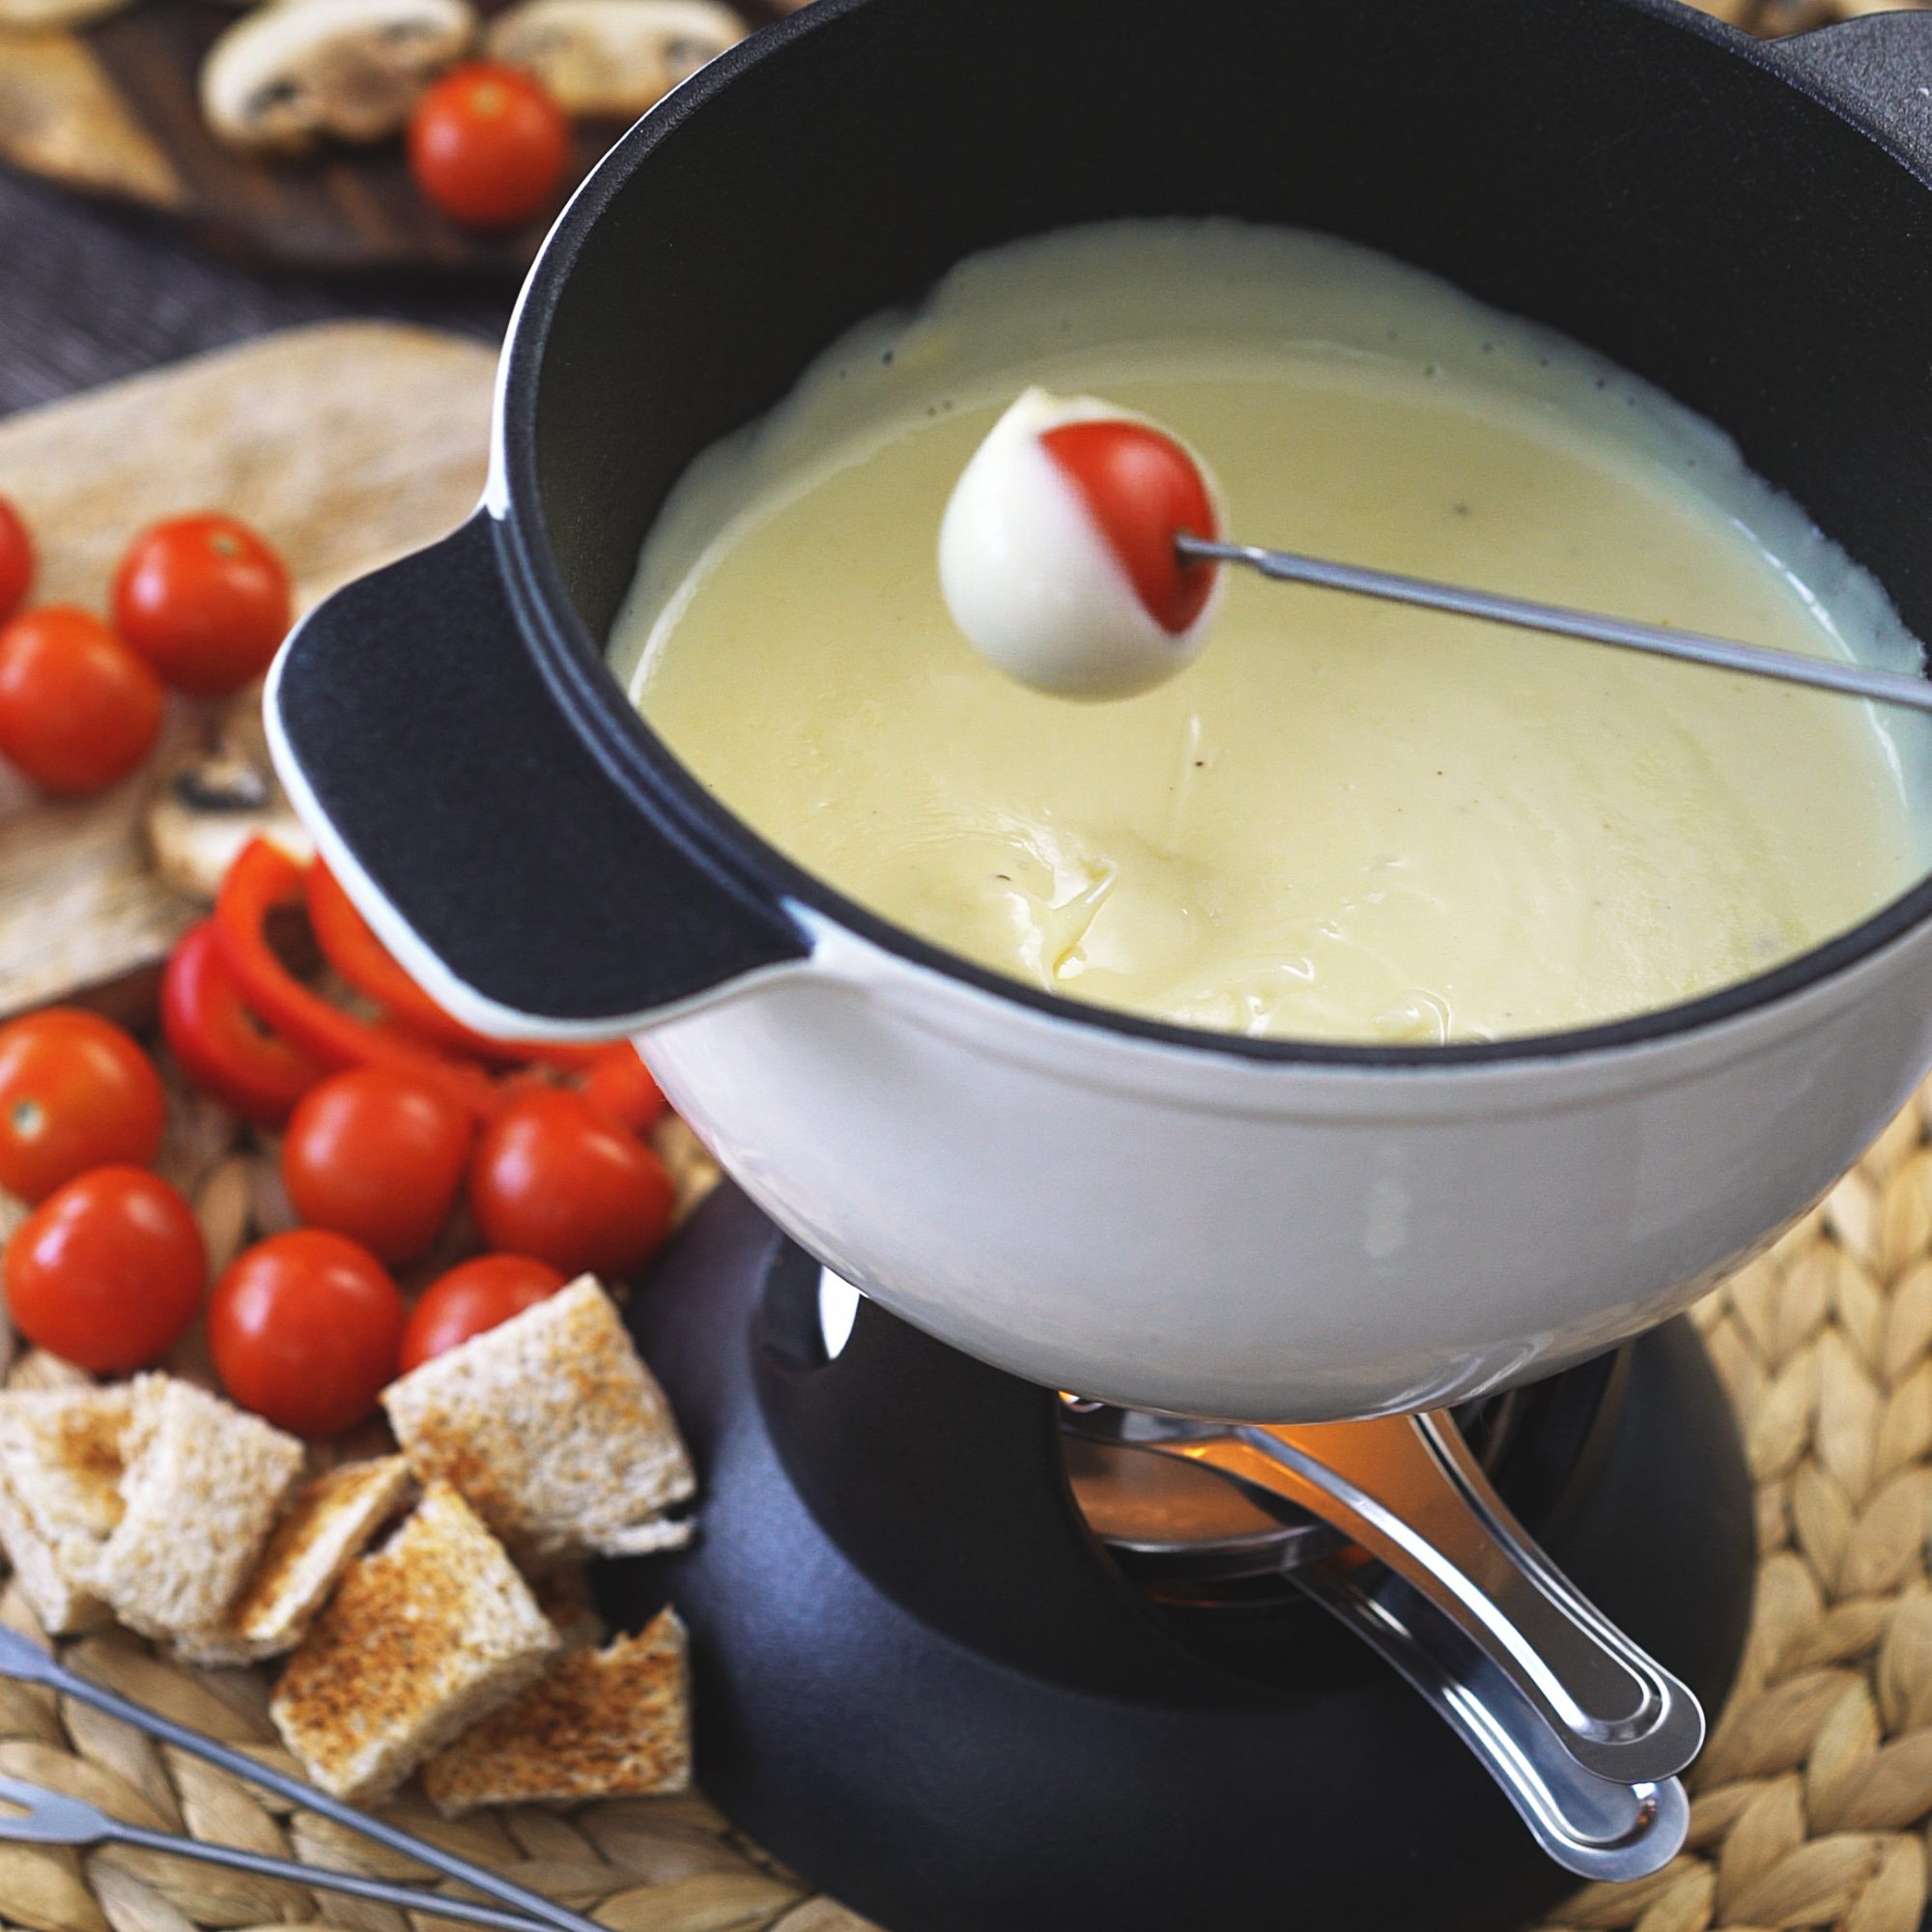 What is fondue